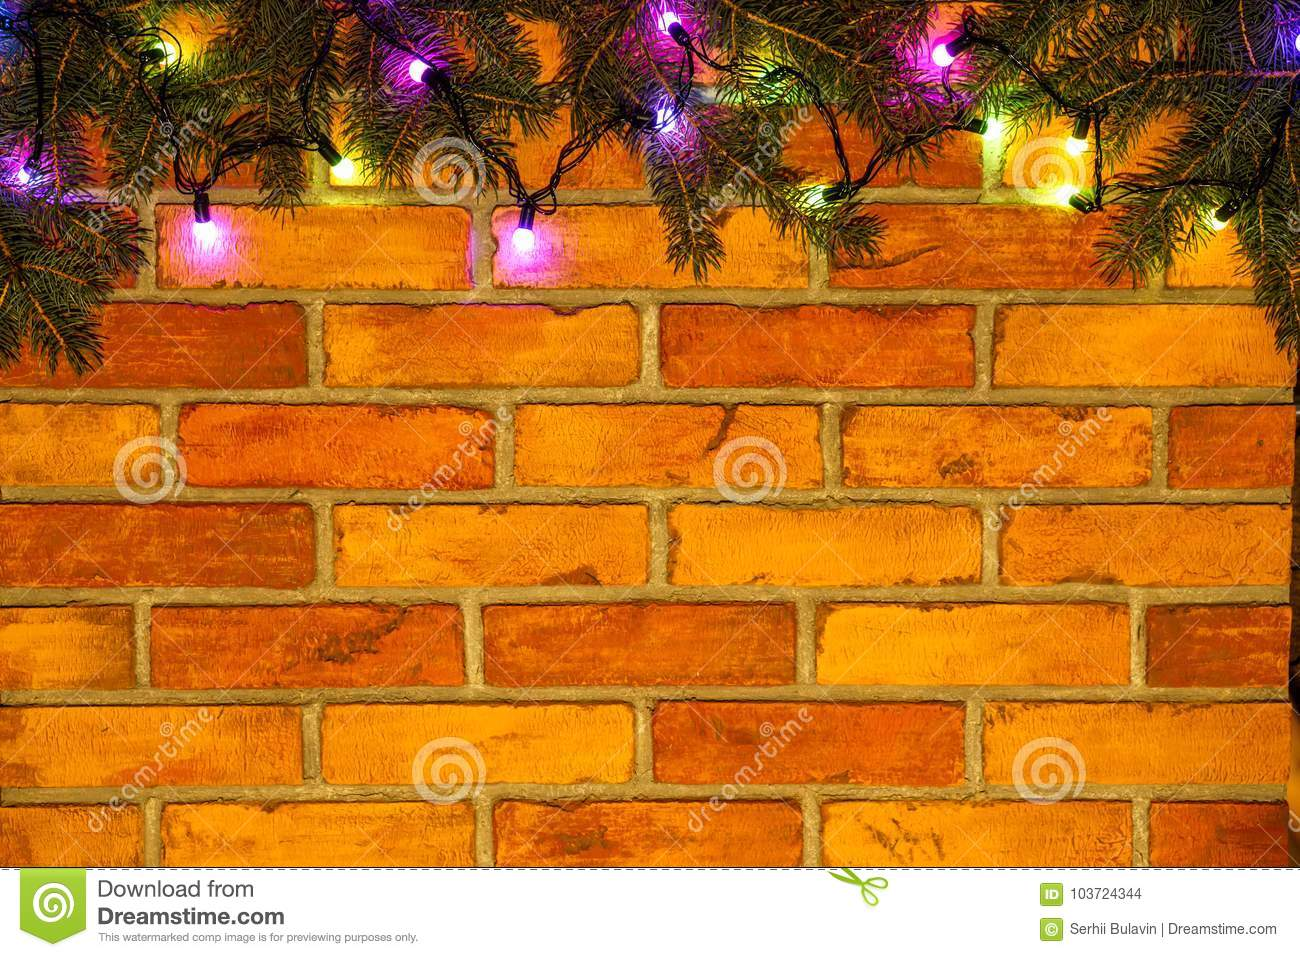 What Can I Use To Attach Christmas Lights To Brick wreath and garlands of colored light bulbs.christmas